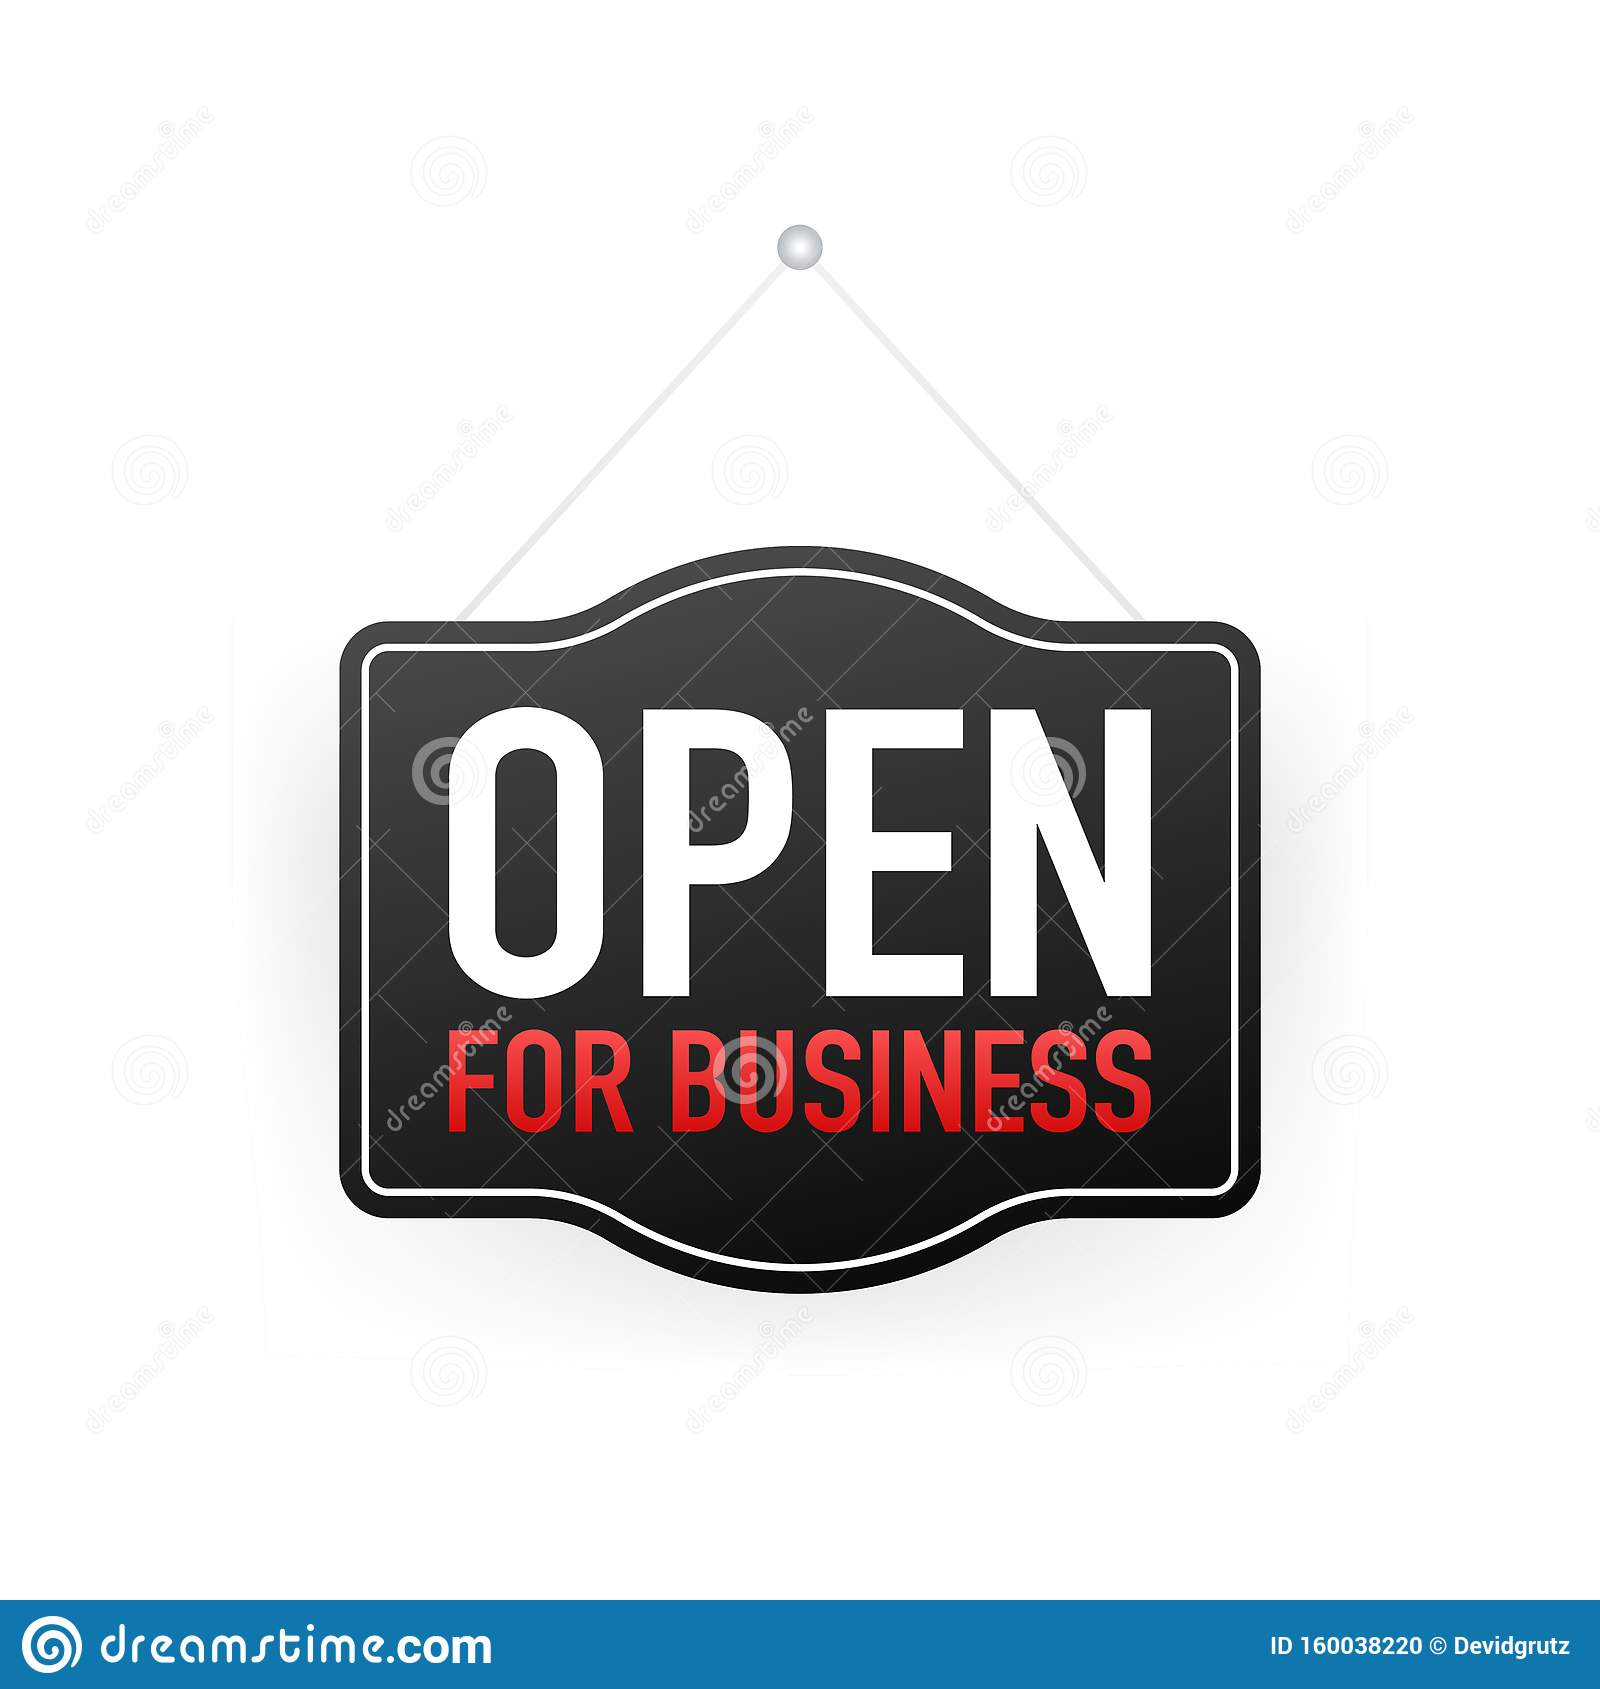 Open For Business Sign. Flat Design For Business Financial